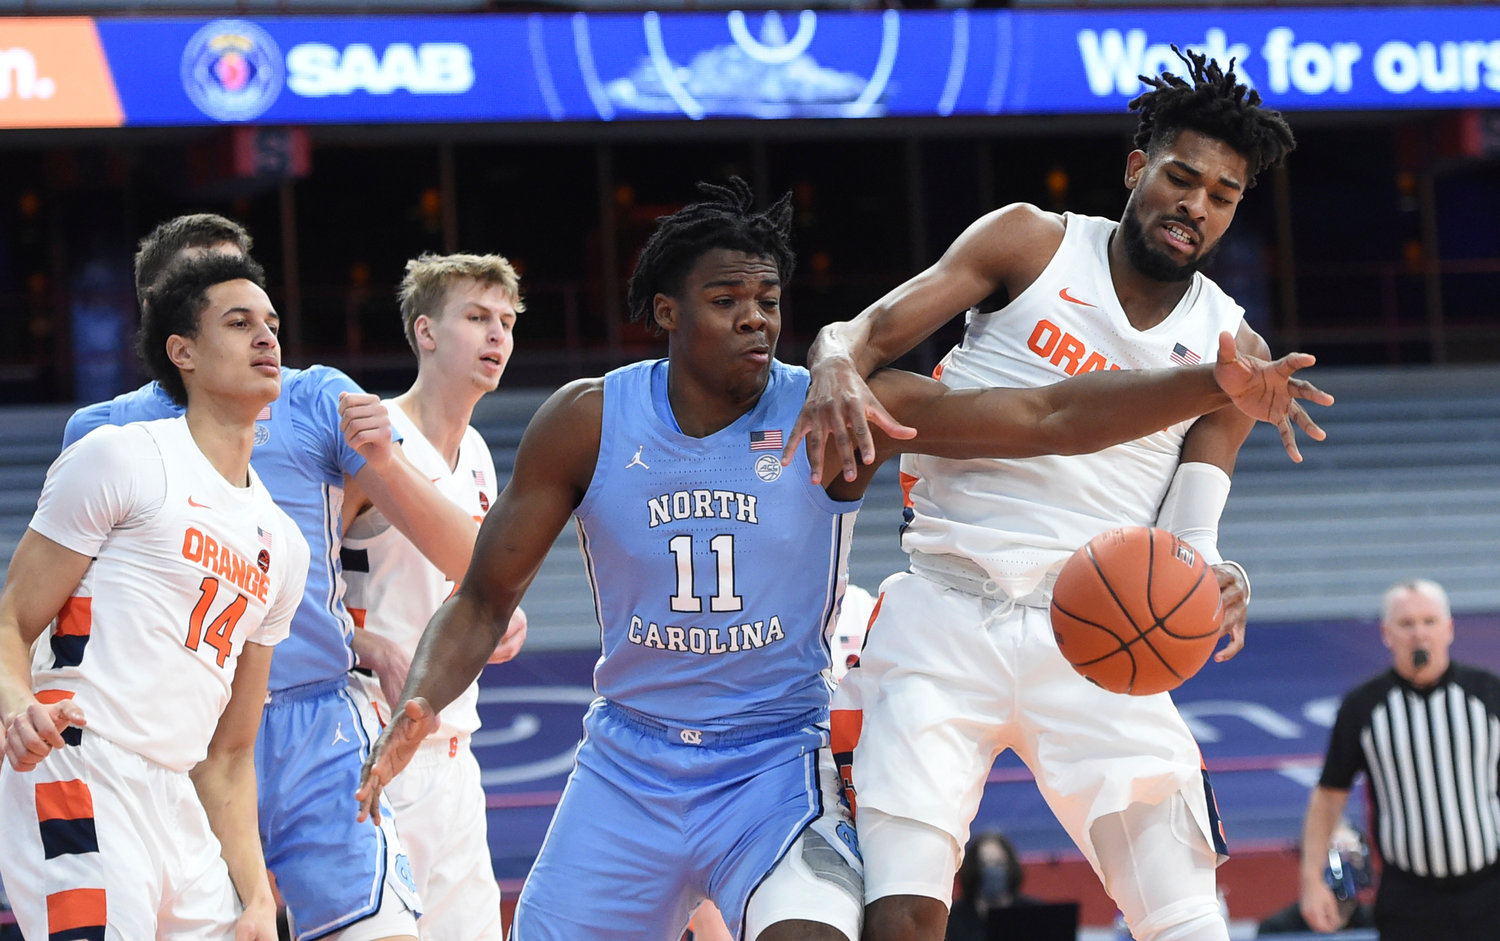 LOOSE BALL — North Carolina forward Day'Ron Sharpe (11) and Syracuse forward Quincy Guerrier, right, work on getting the ball during a college basketball game at the Carrier Dome in Syracuse on Monday night. The Orange won, 72-70.